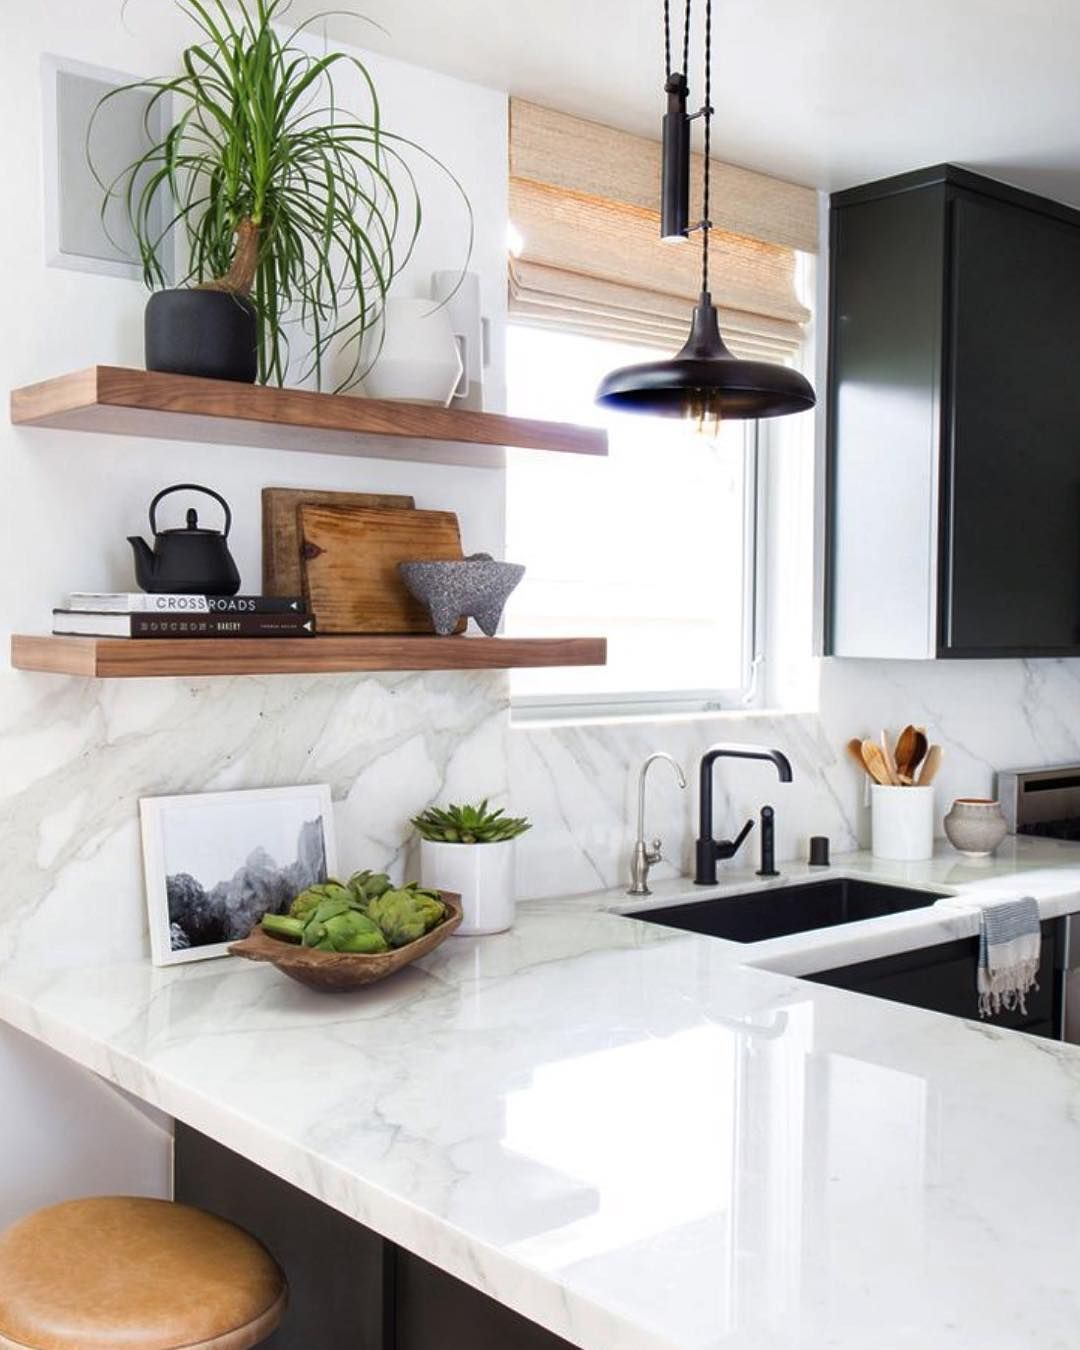 Loving this kitchen and those simple hardwood shelves marble and